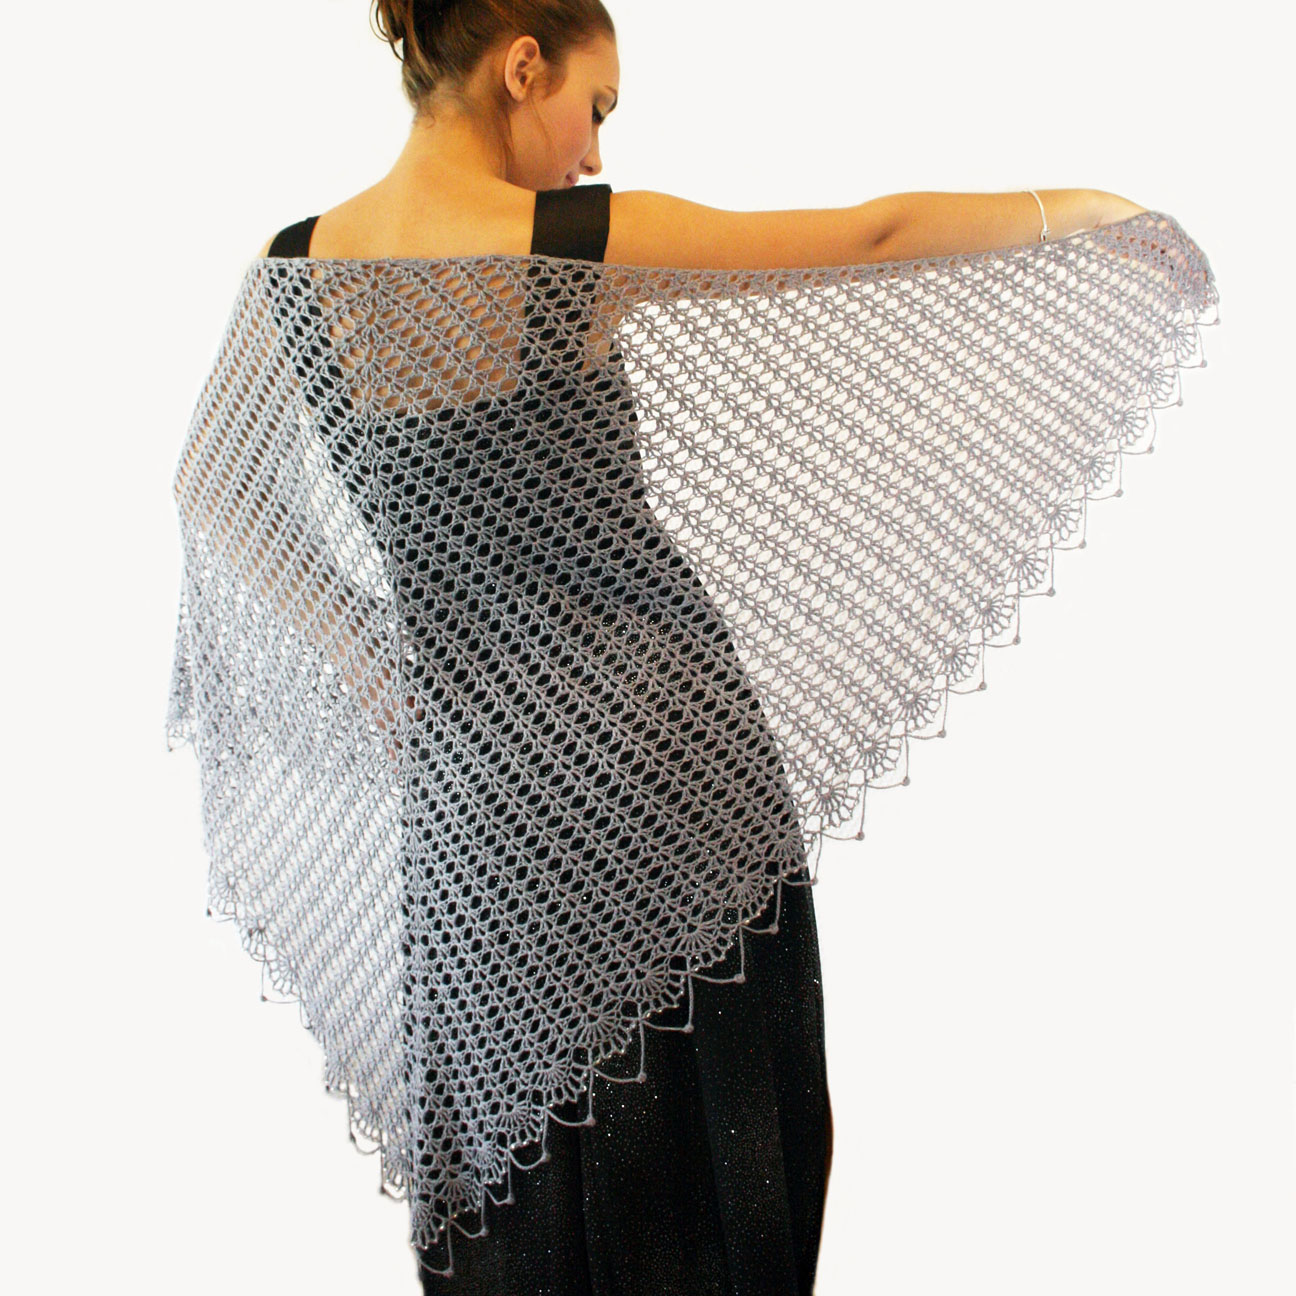 knot•sew•cute design shop: new crochet pattern - wrapped in lace shawl.